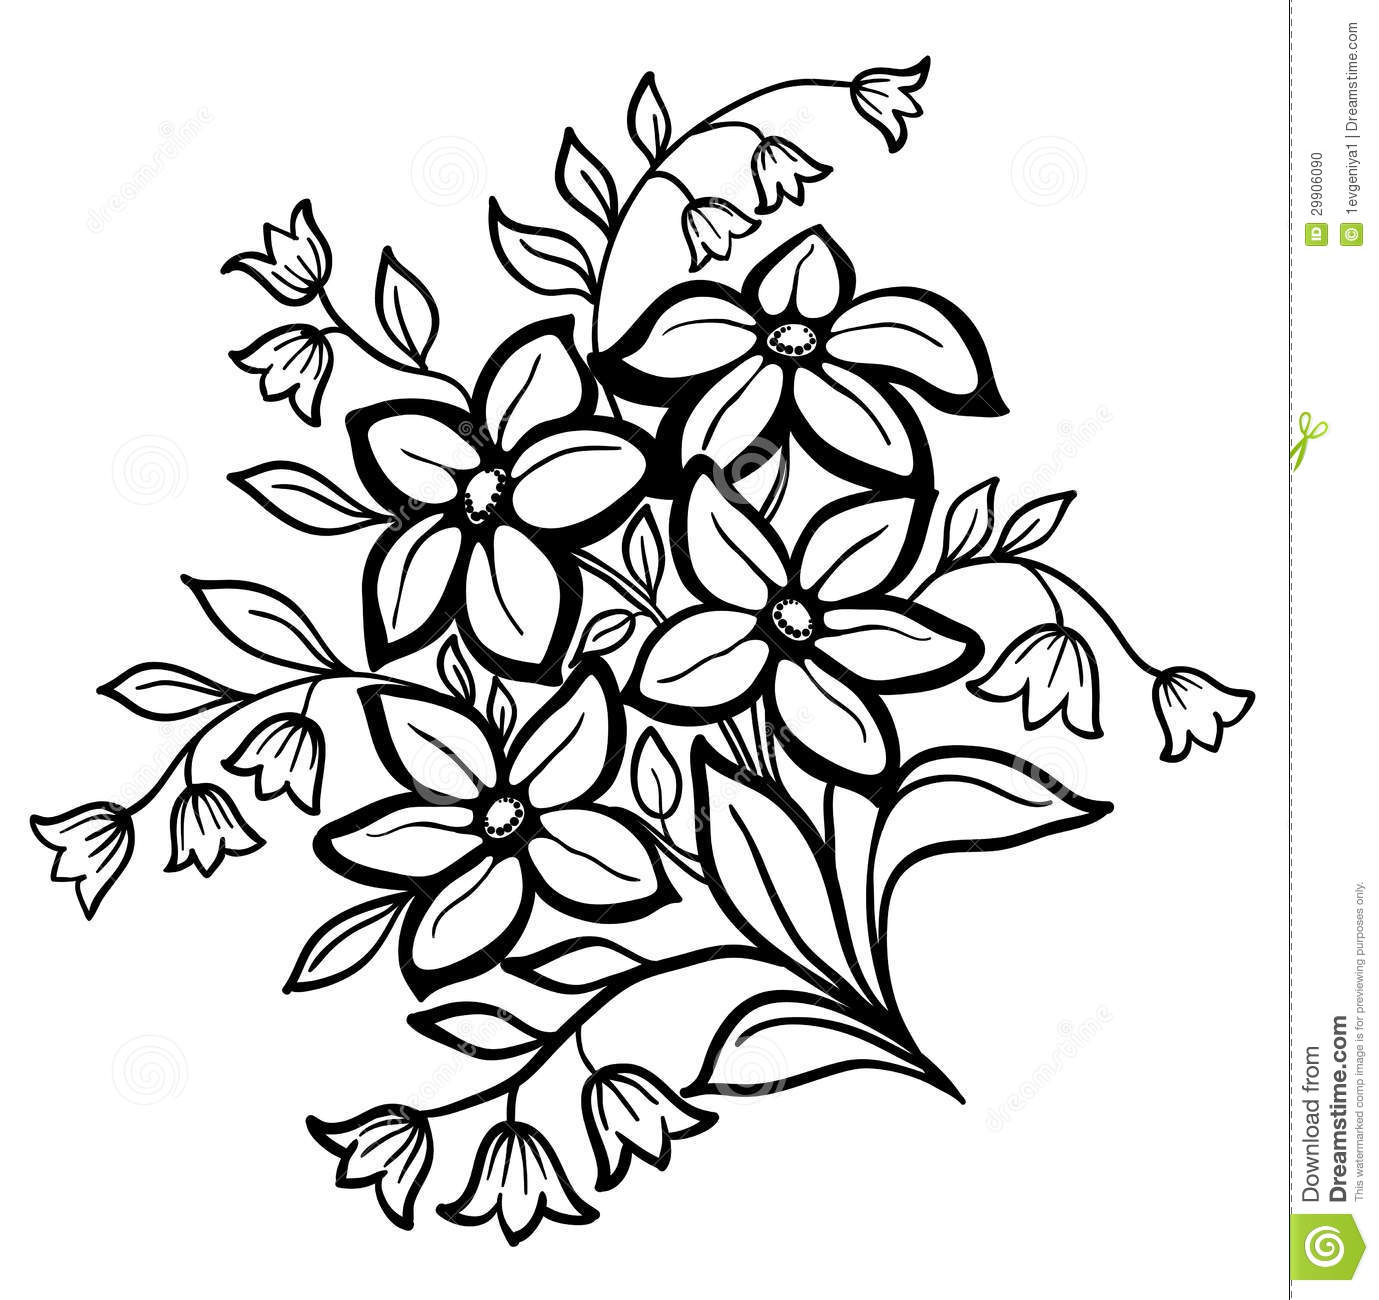 Sunflower outline drawing at getdrawings free for personal use 1379x1300 black and white sunflower tattoo clipart panda free clipart images mightylinksfo